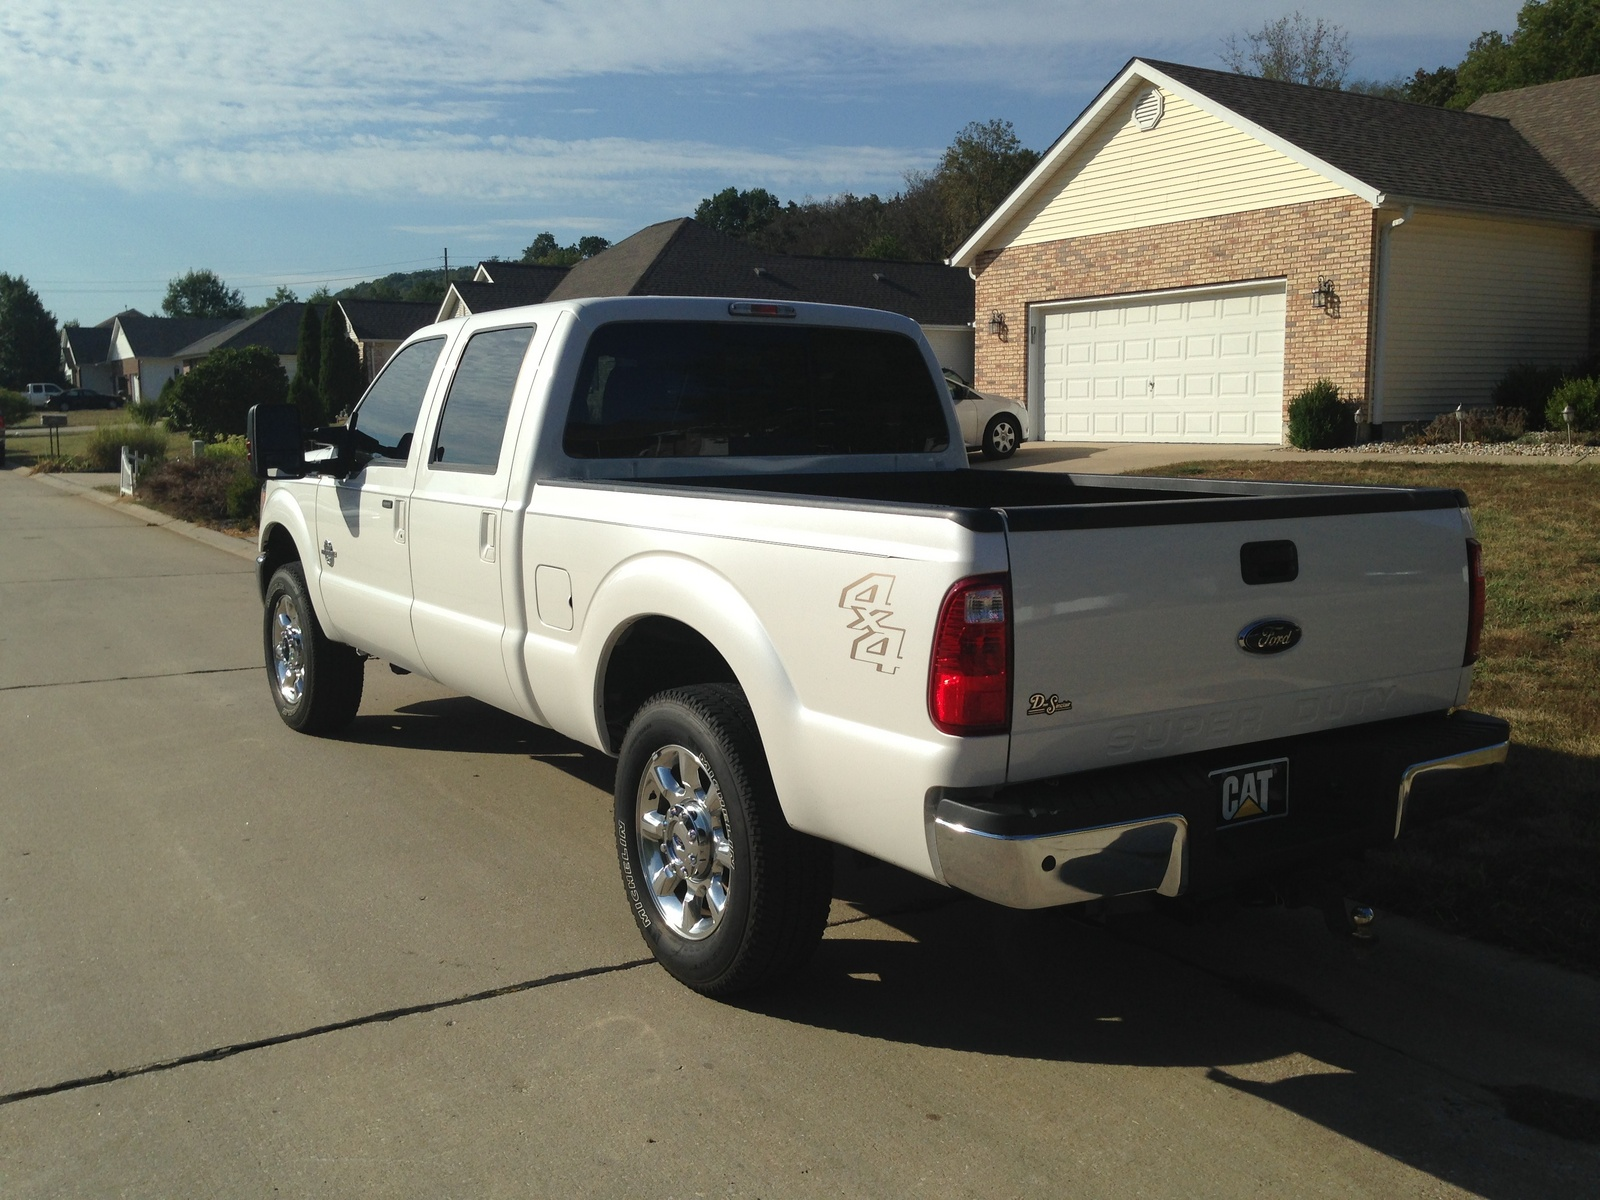 2000 Ford F350 Super Duty >> 2012 Ford F-250 Super Duty - Pictures - CarGurus